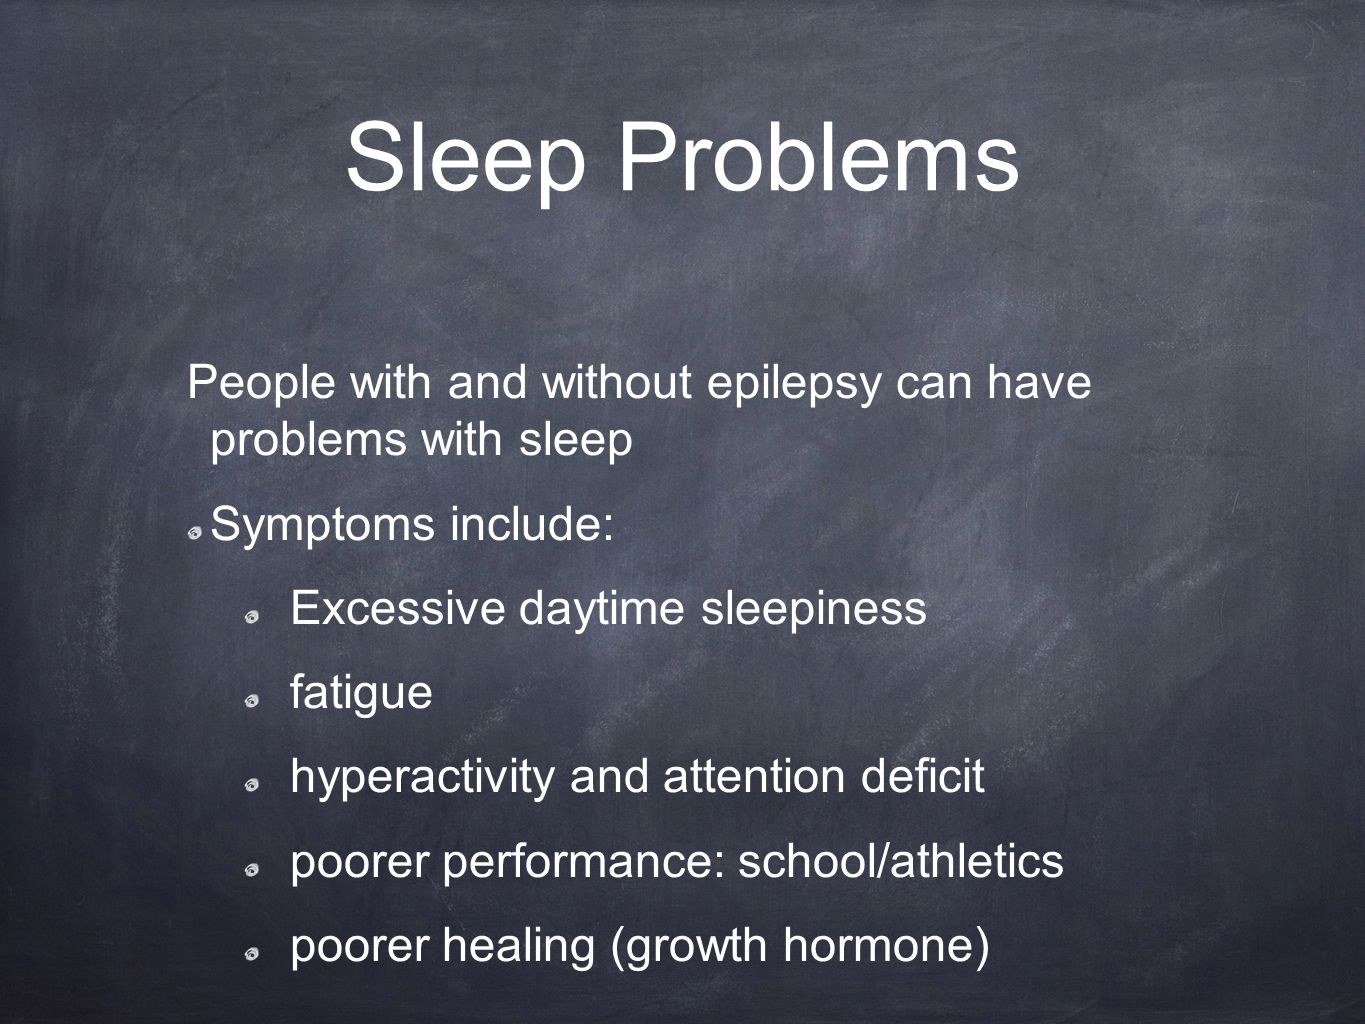 Sleep Problems People with and without epilepsy can have problems with sleep Symptoms include: Excessive daytime sleepiness fatigue hyperactivity and attention deficit poorer performance: school/athletics poorer healing (growth hormone)